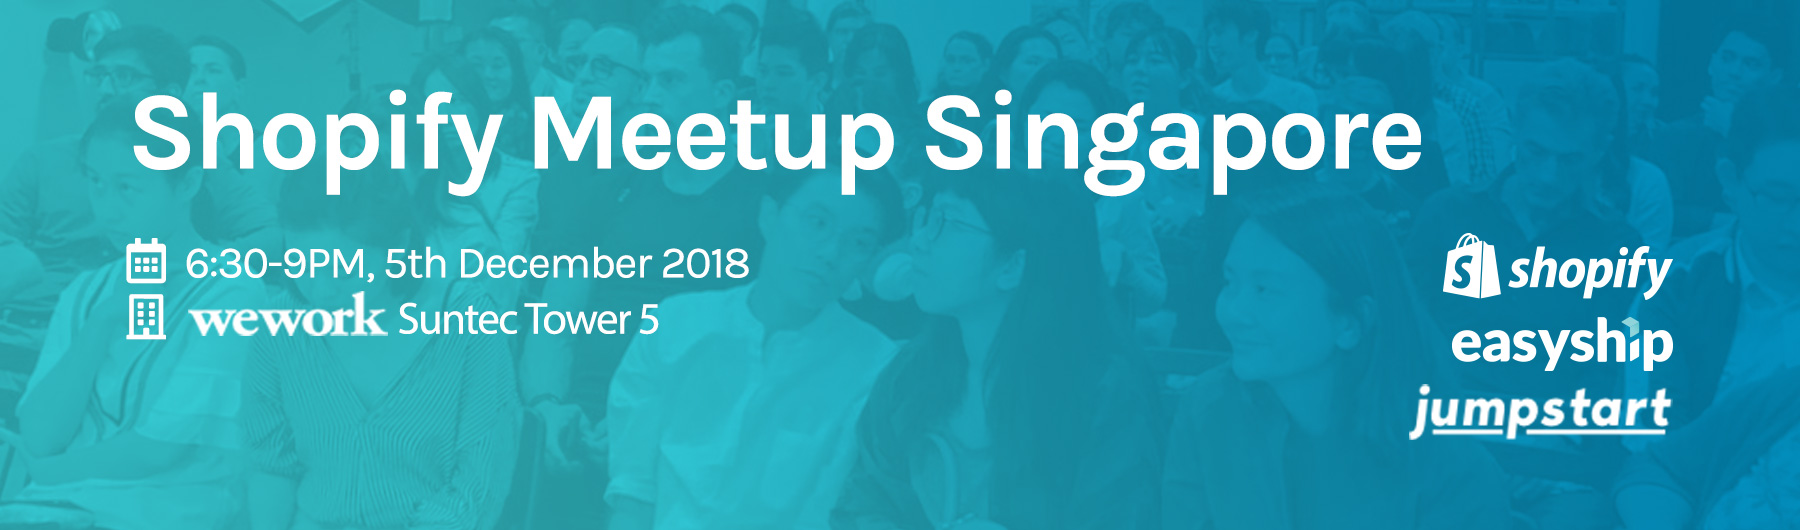 Shopify Meetup Singapore, 5 Dec 2018